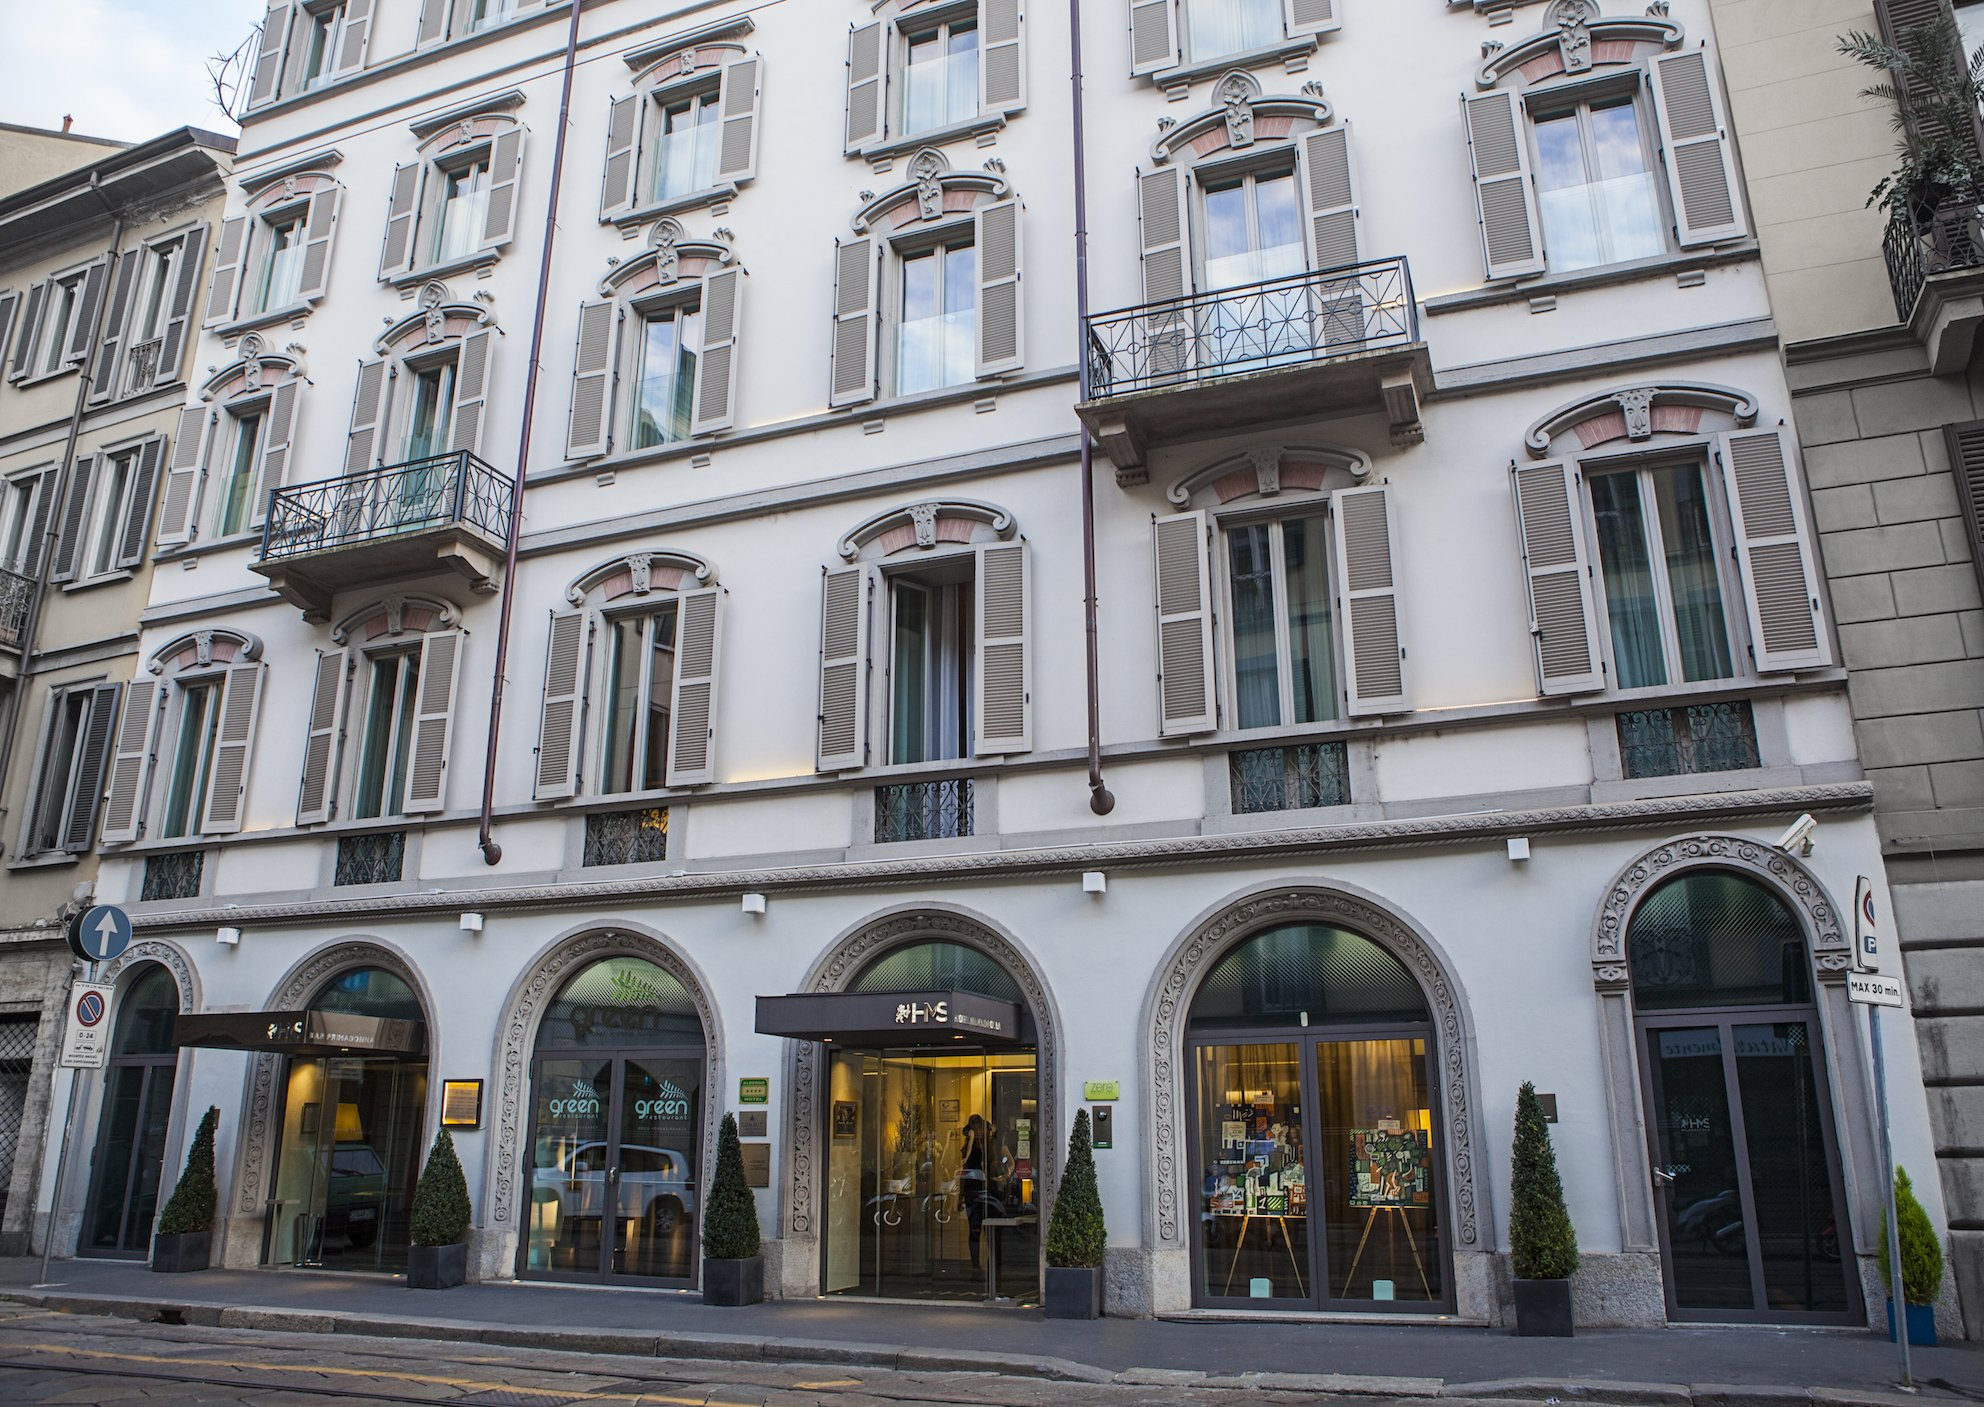 Hotel Milano Scala – Entrance